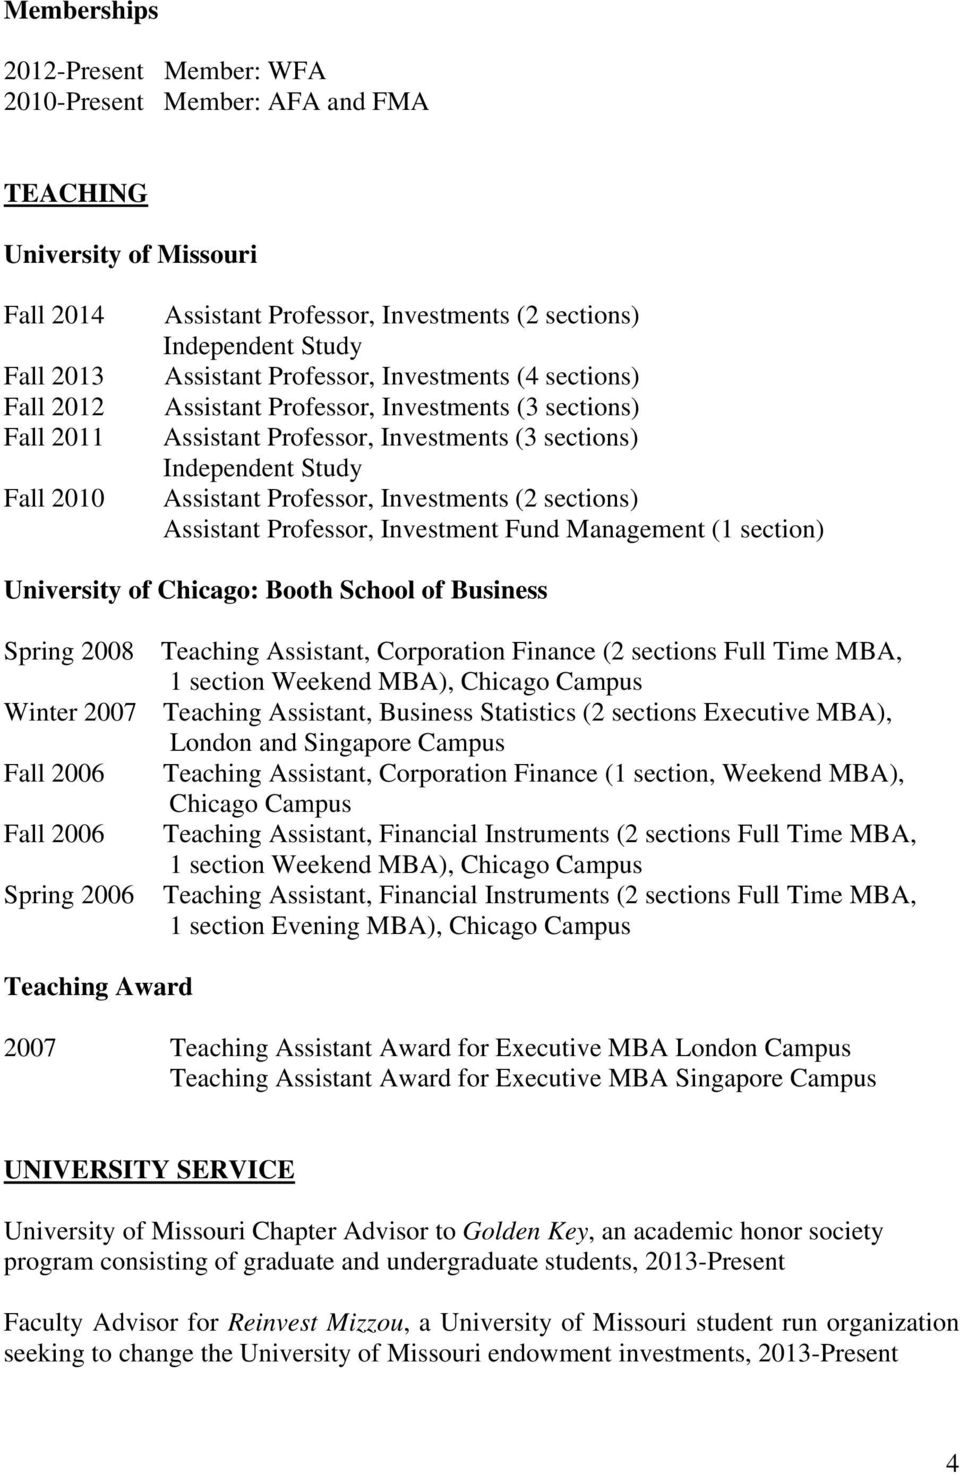 sections) Assistant Professor, Investment Fund Management (1 section) University of Chicago: Booth School of Business Spring 2008 Teaching Assistant, Corporation Finance (2 sections Full Time MBA, 1